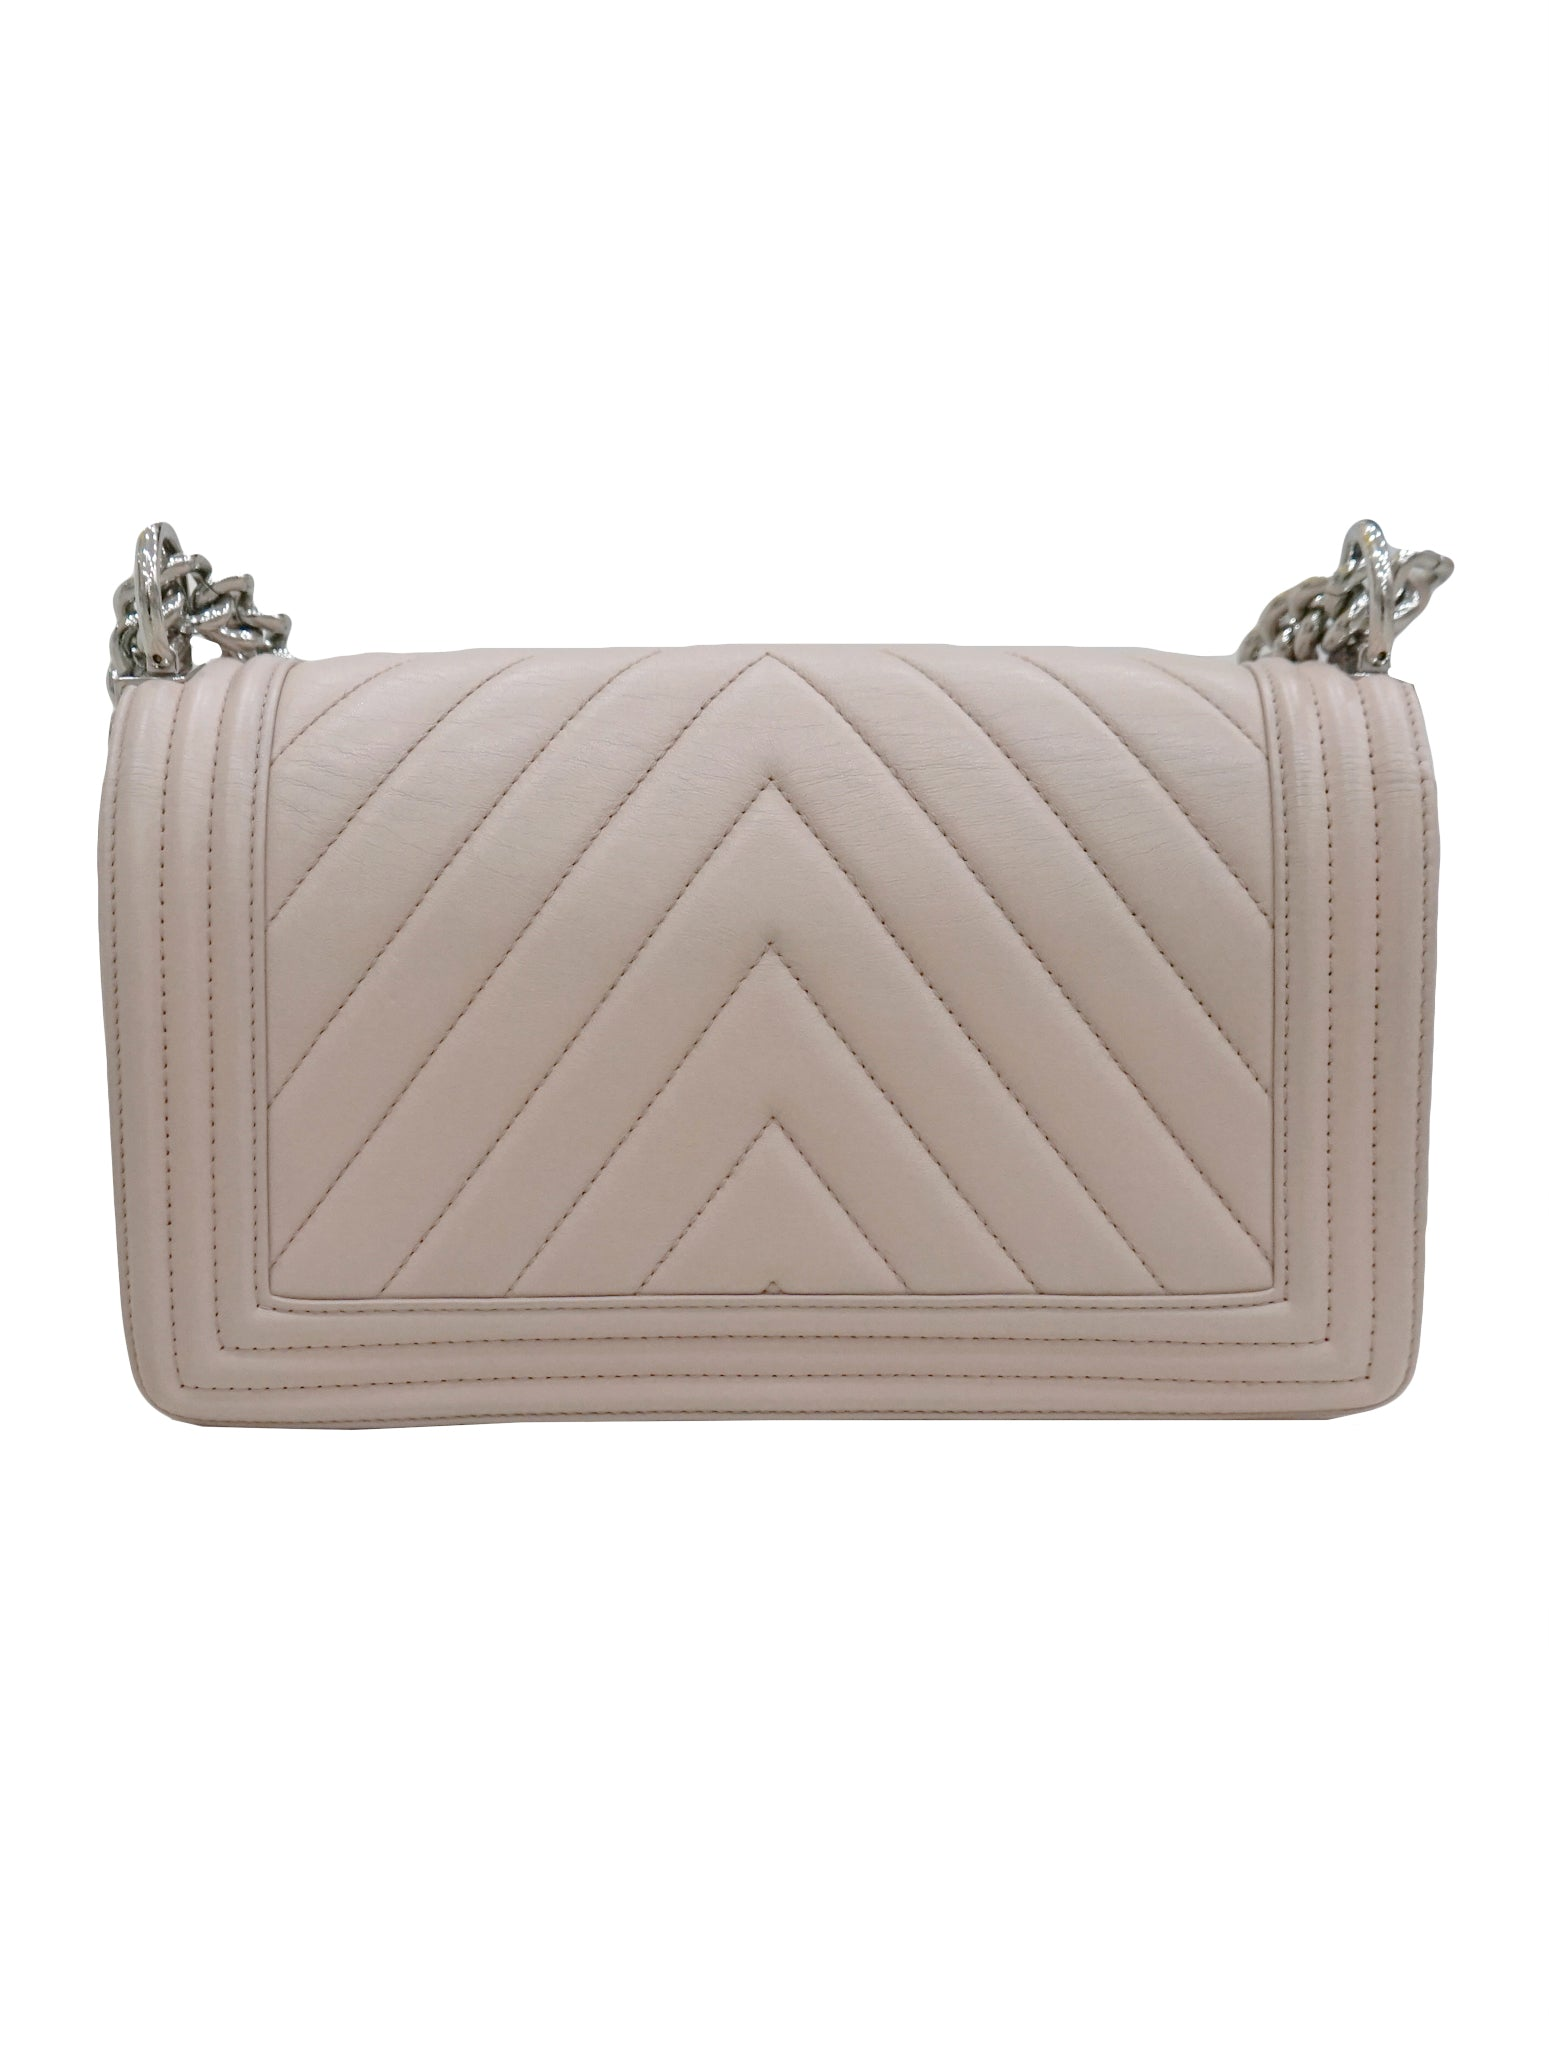 LAMBSKIN CHEVRON QUILTED BOY FLAP